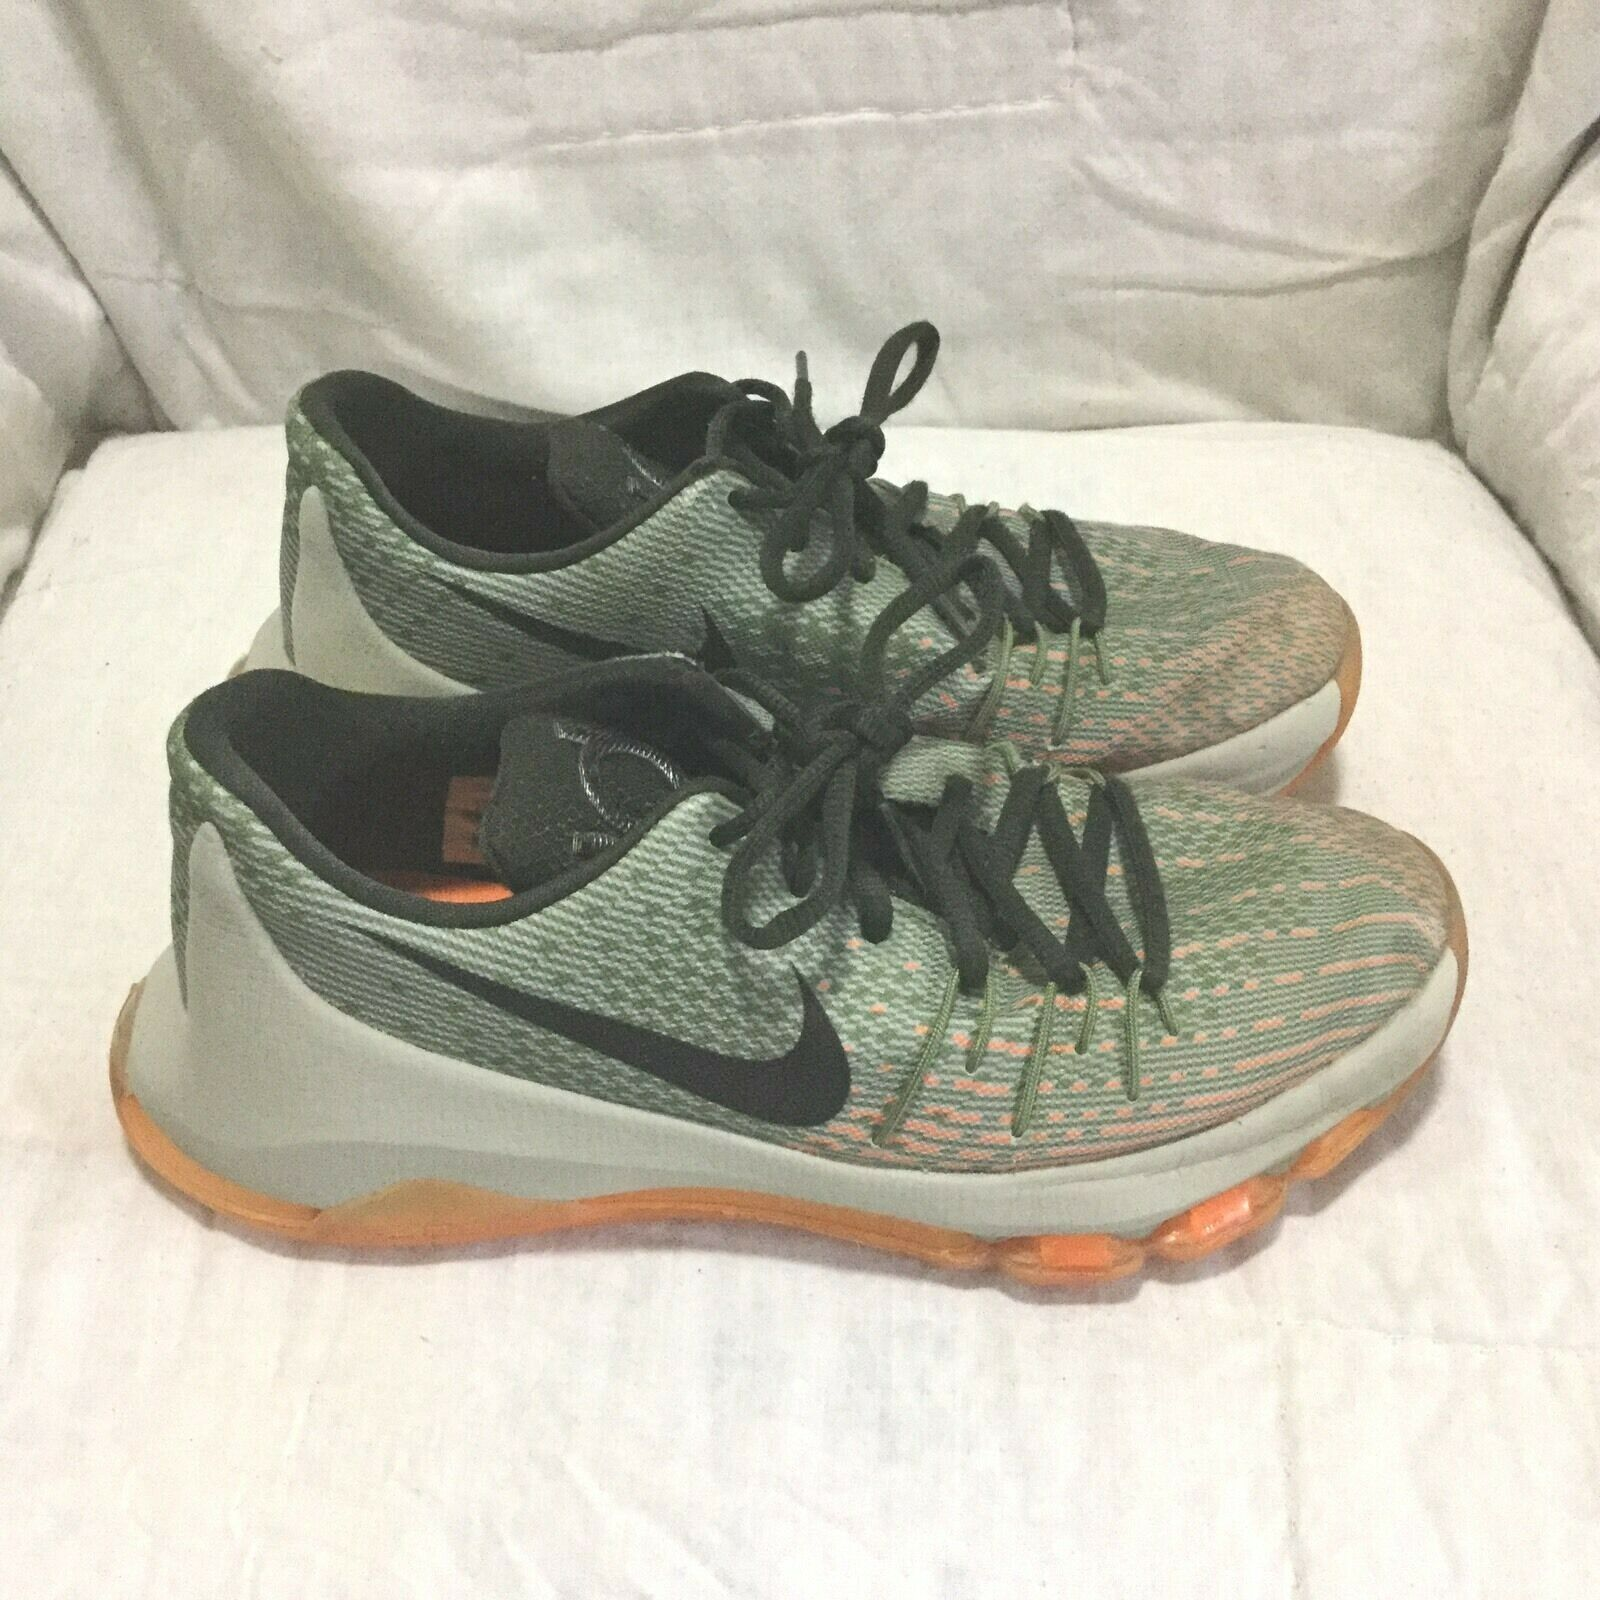 NIKE KD 8 KEVIN DURANT BASKETBALL SHOES - MULTI COLOR ( SIZE 7Y ) YOUTH